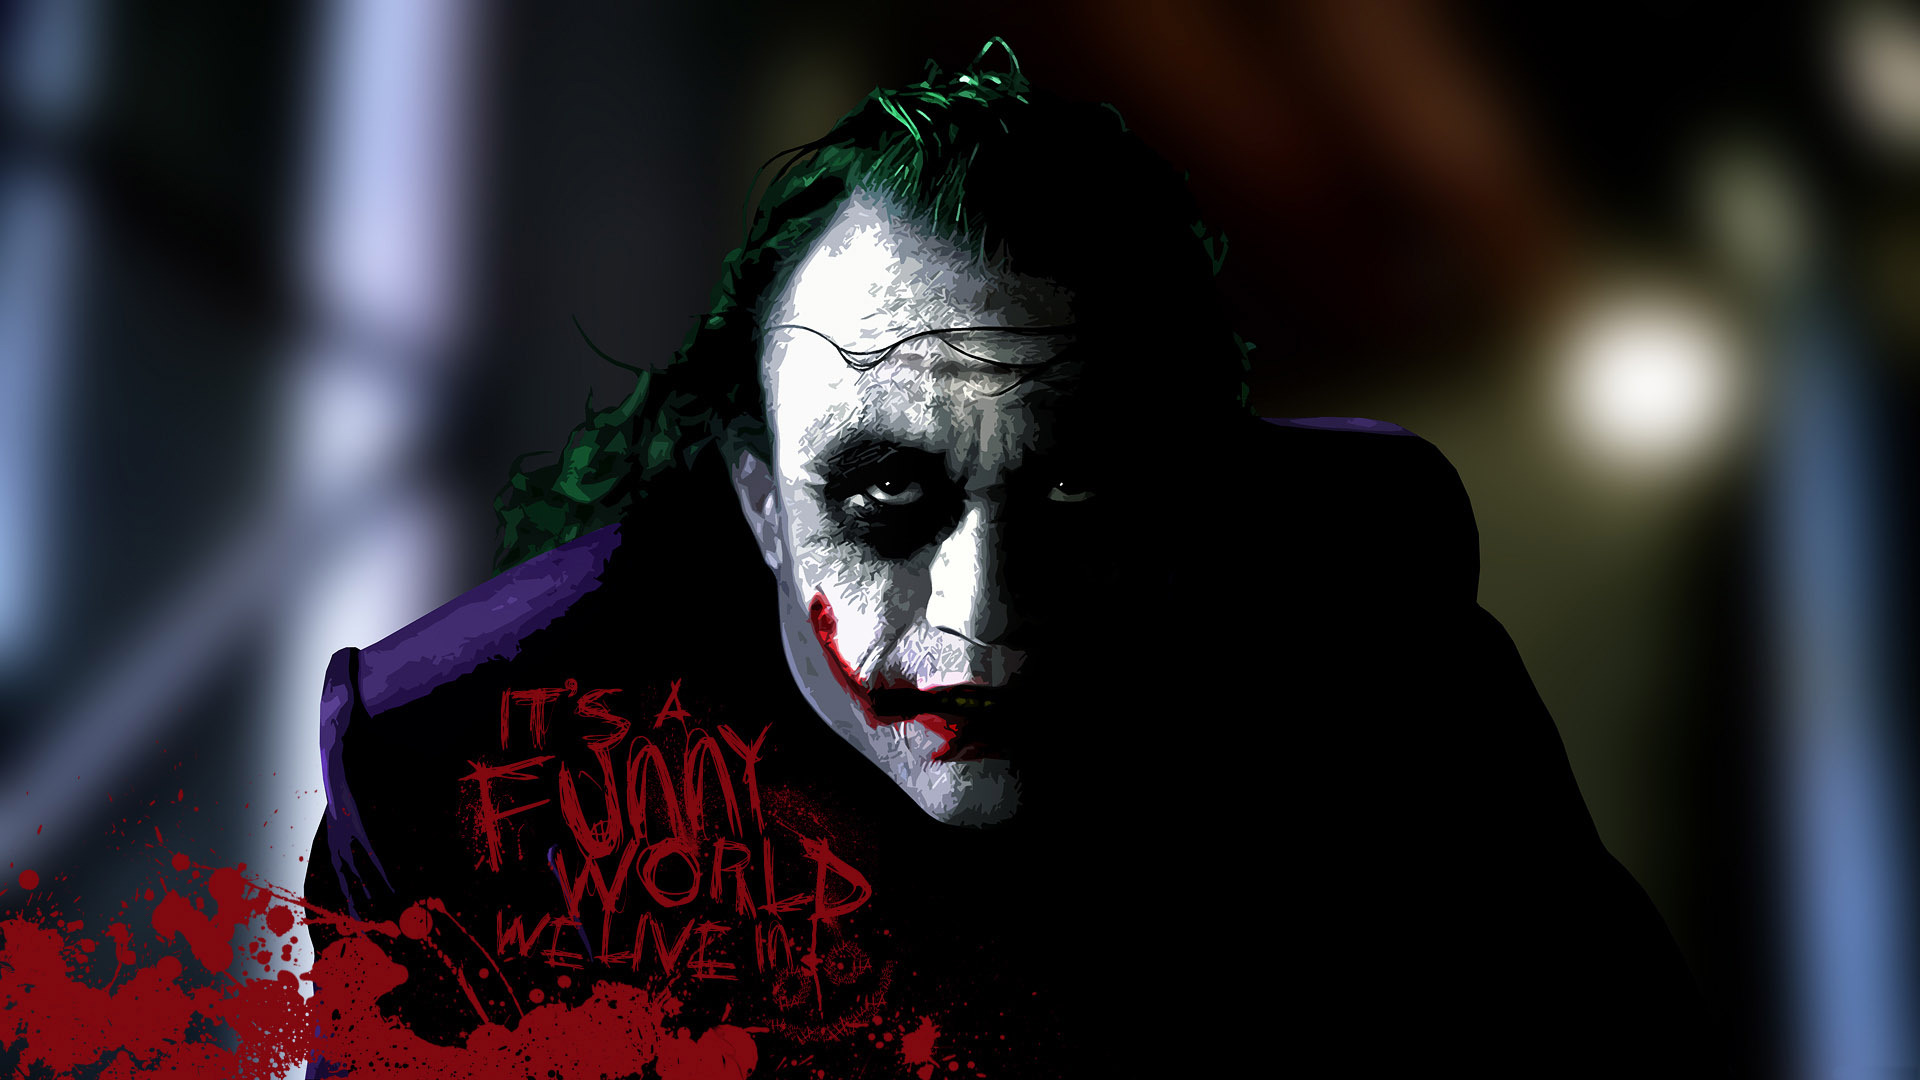 The Joker   The Dark Knight wallpaper 20426 1920x1080